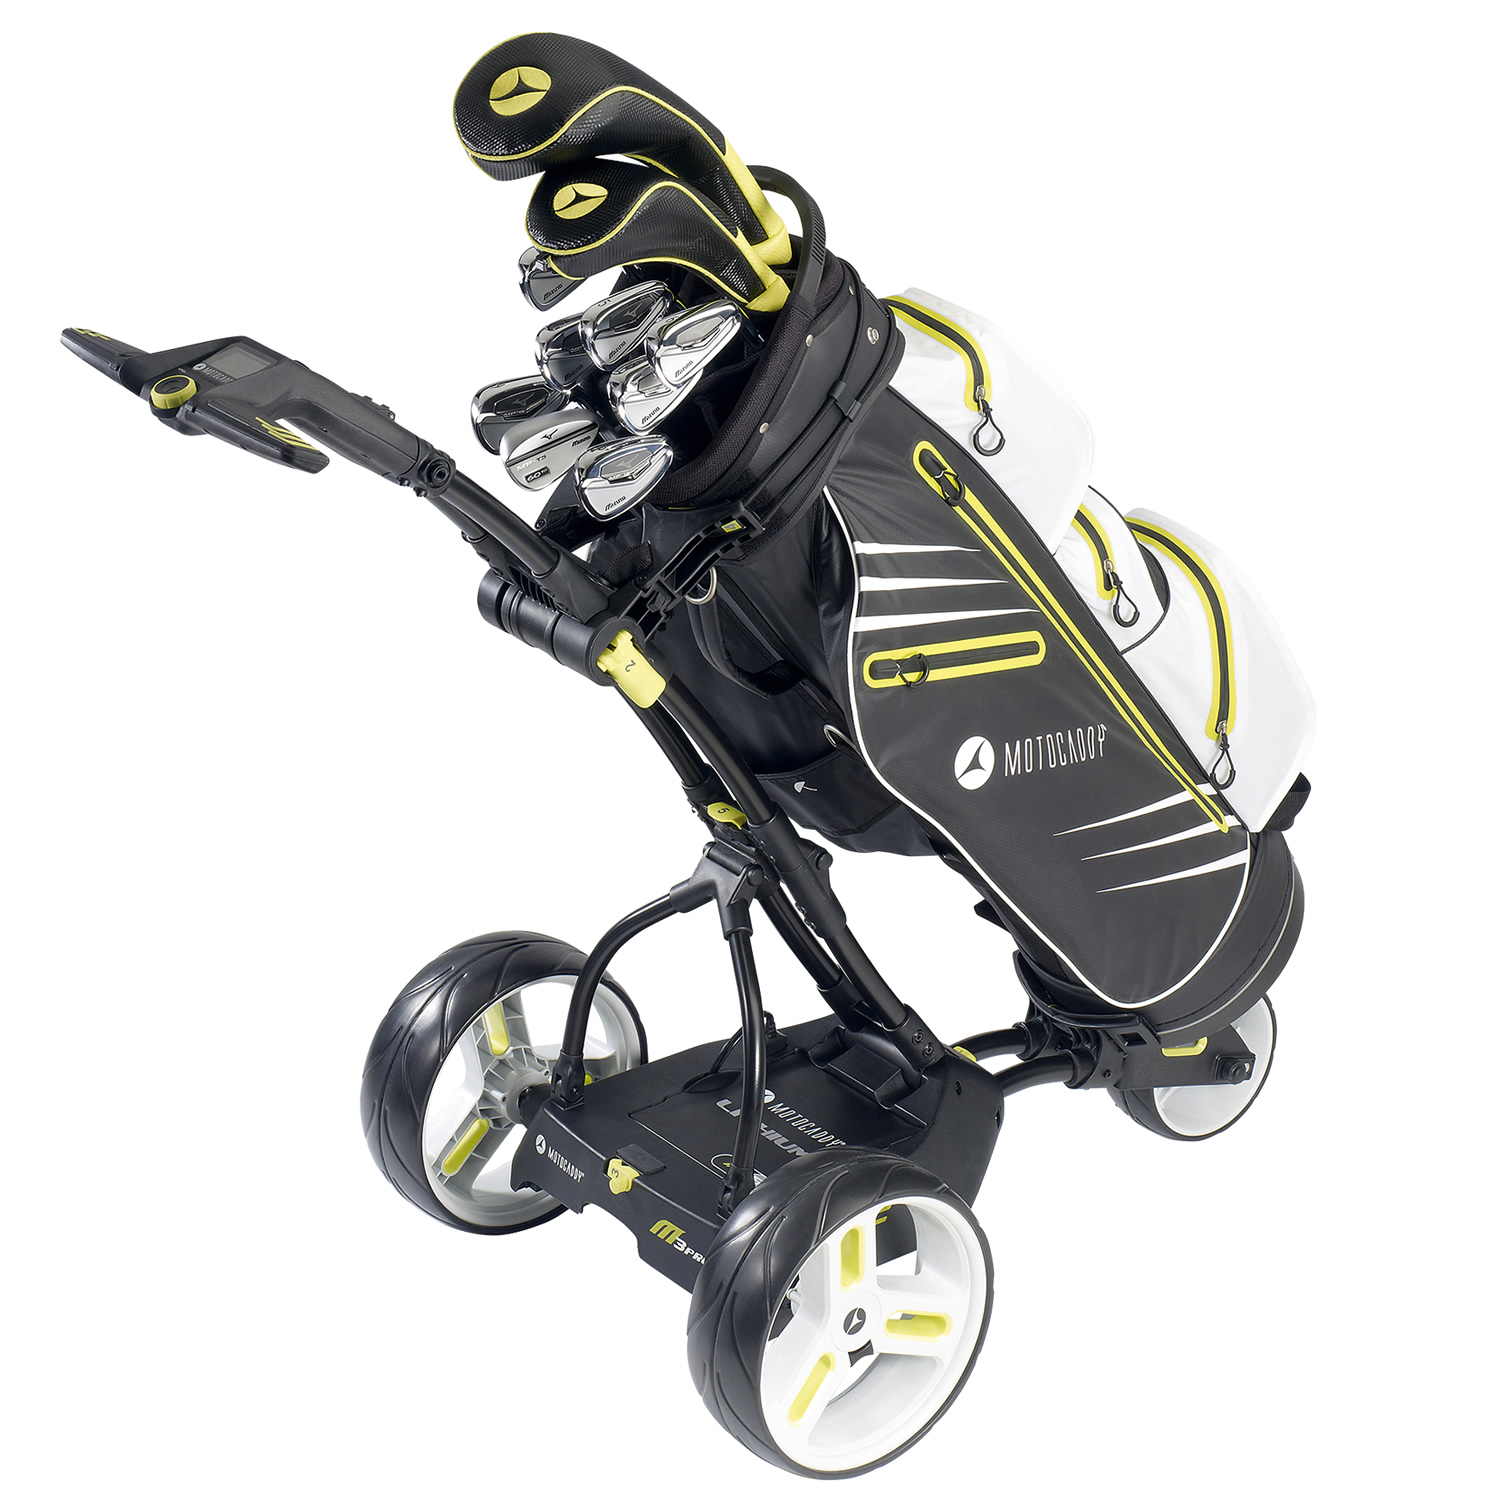 motocaddy m3 pro electric golf trolley black or alpine with a lead acid or lithium battery. Black Bedroom Furniture Sets. Home Design Ideas